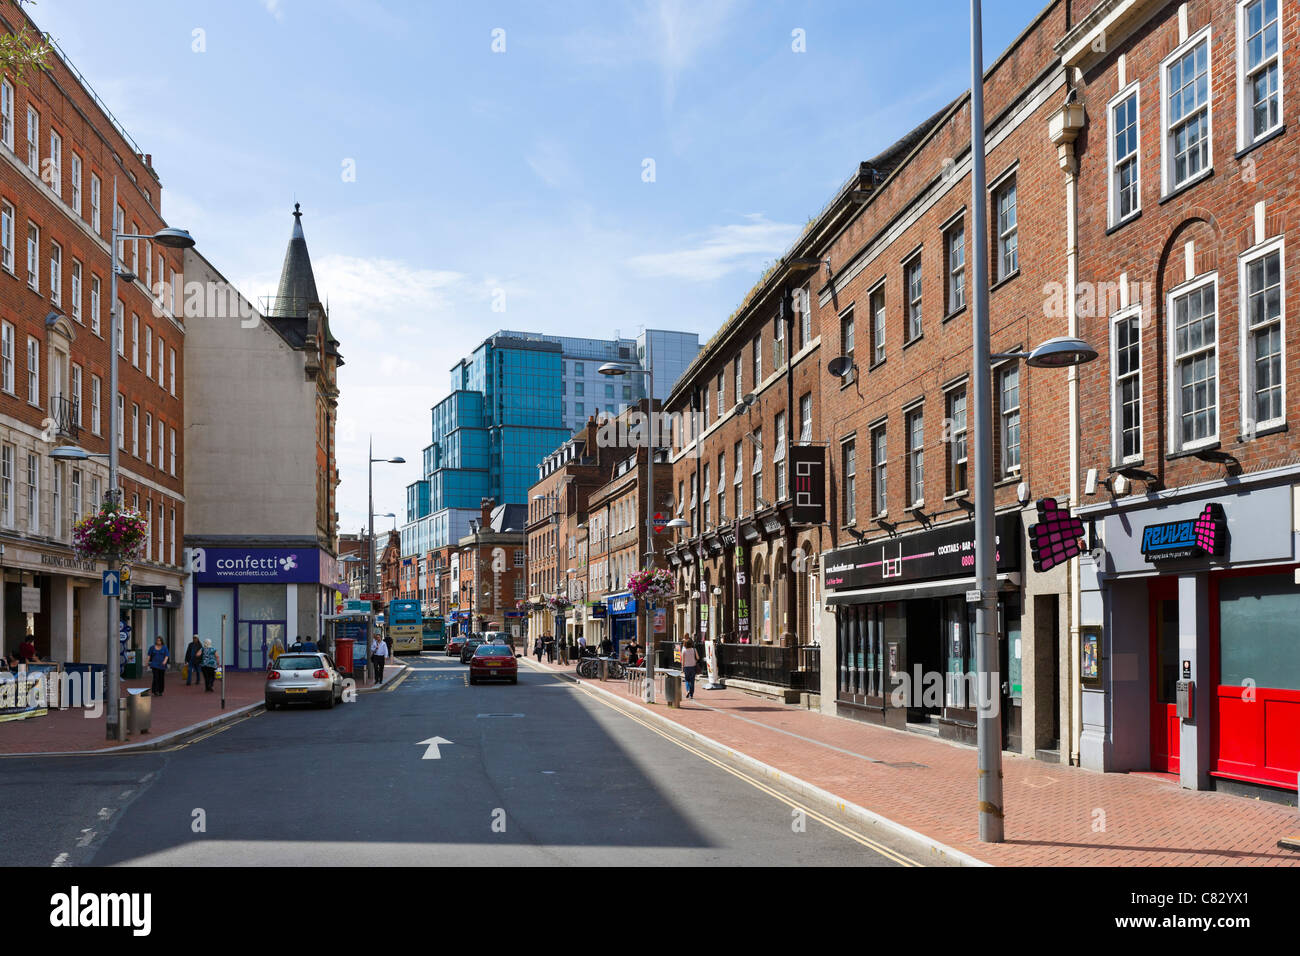 Shops on King Street in the city centre, Reading, Berkshire, England, UK - Stock Image